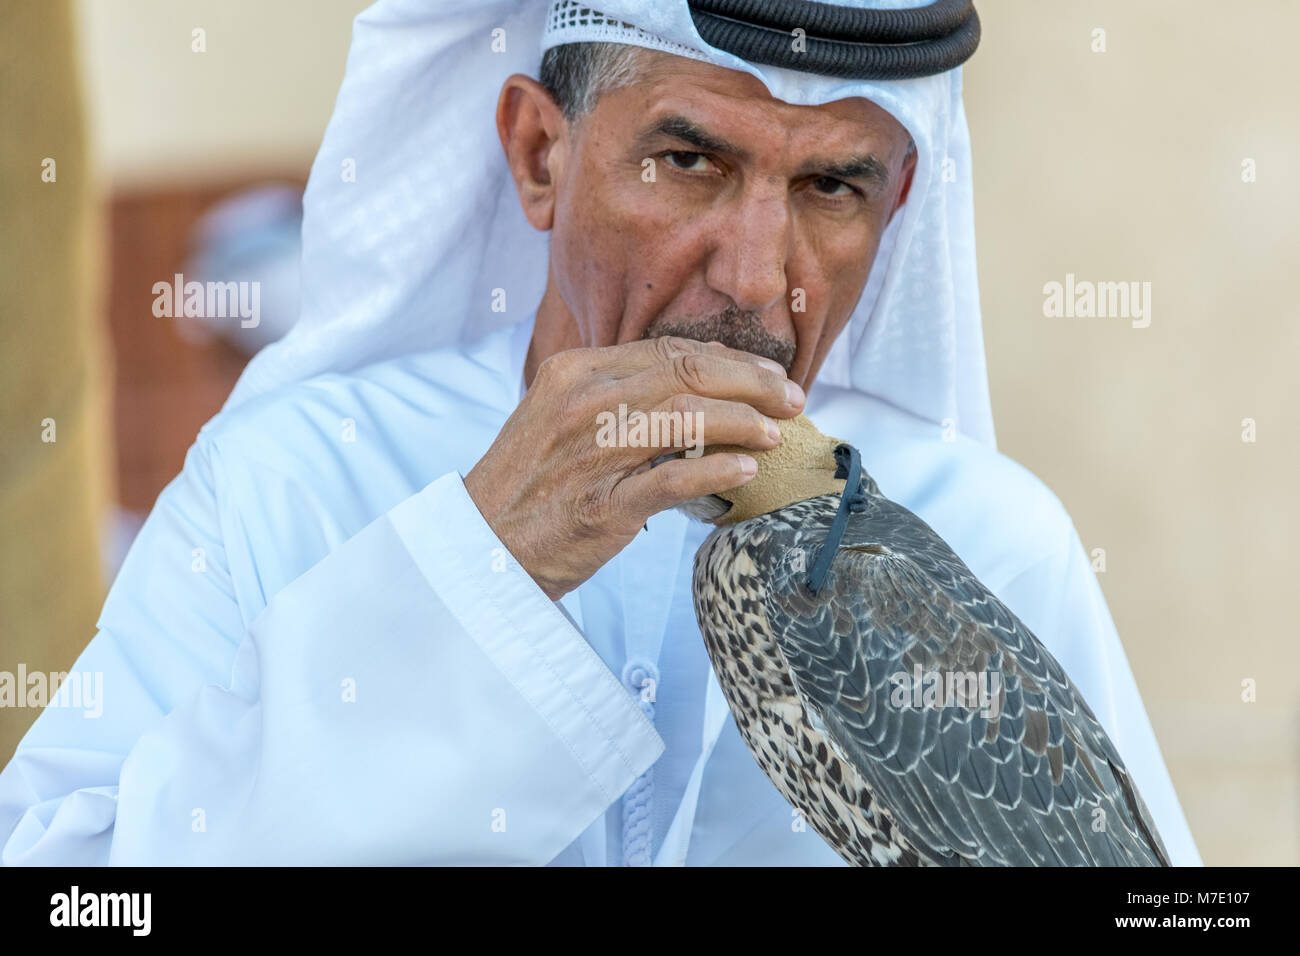 Emirati man in traditional dress placing a hood on a saker falcon hunting bird at the Sheikh Zayed Heritage Festival Stock Photo